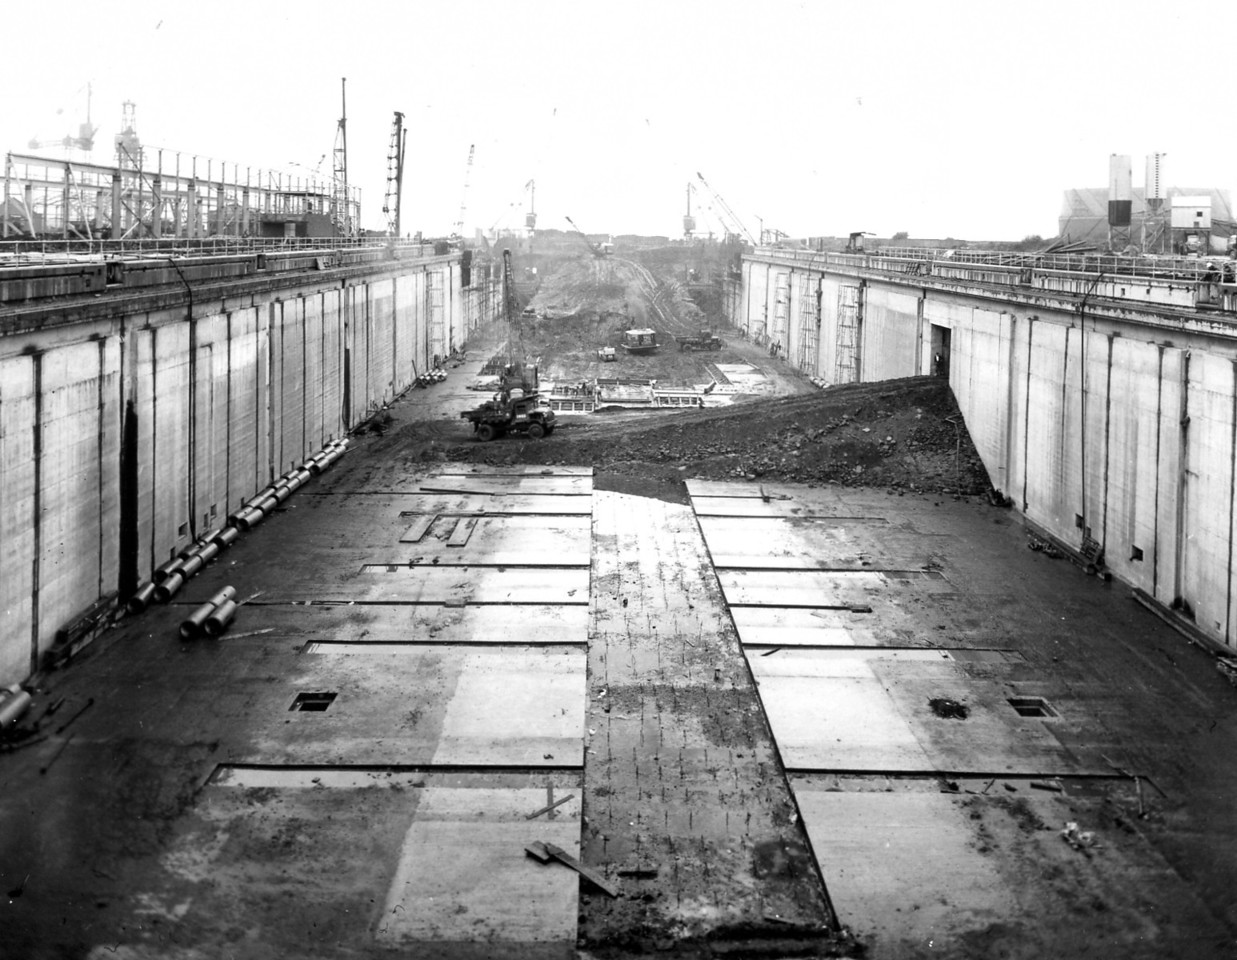 D097General view along centreline of dock - taken 2nd and 4th September 1963